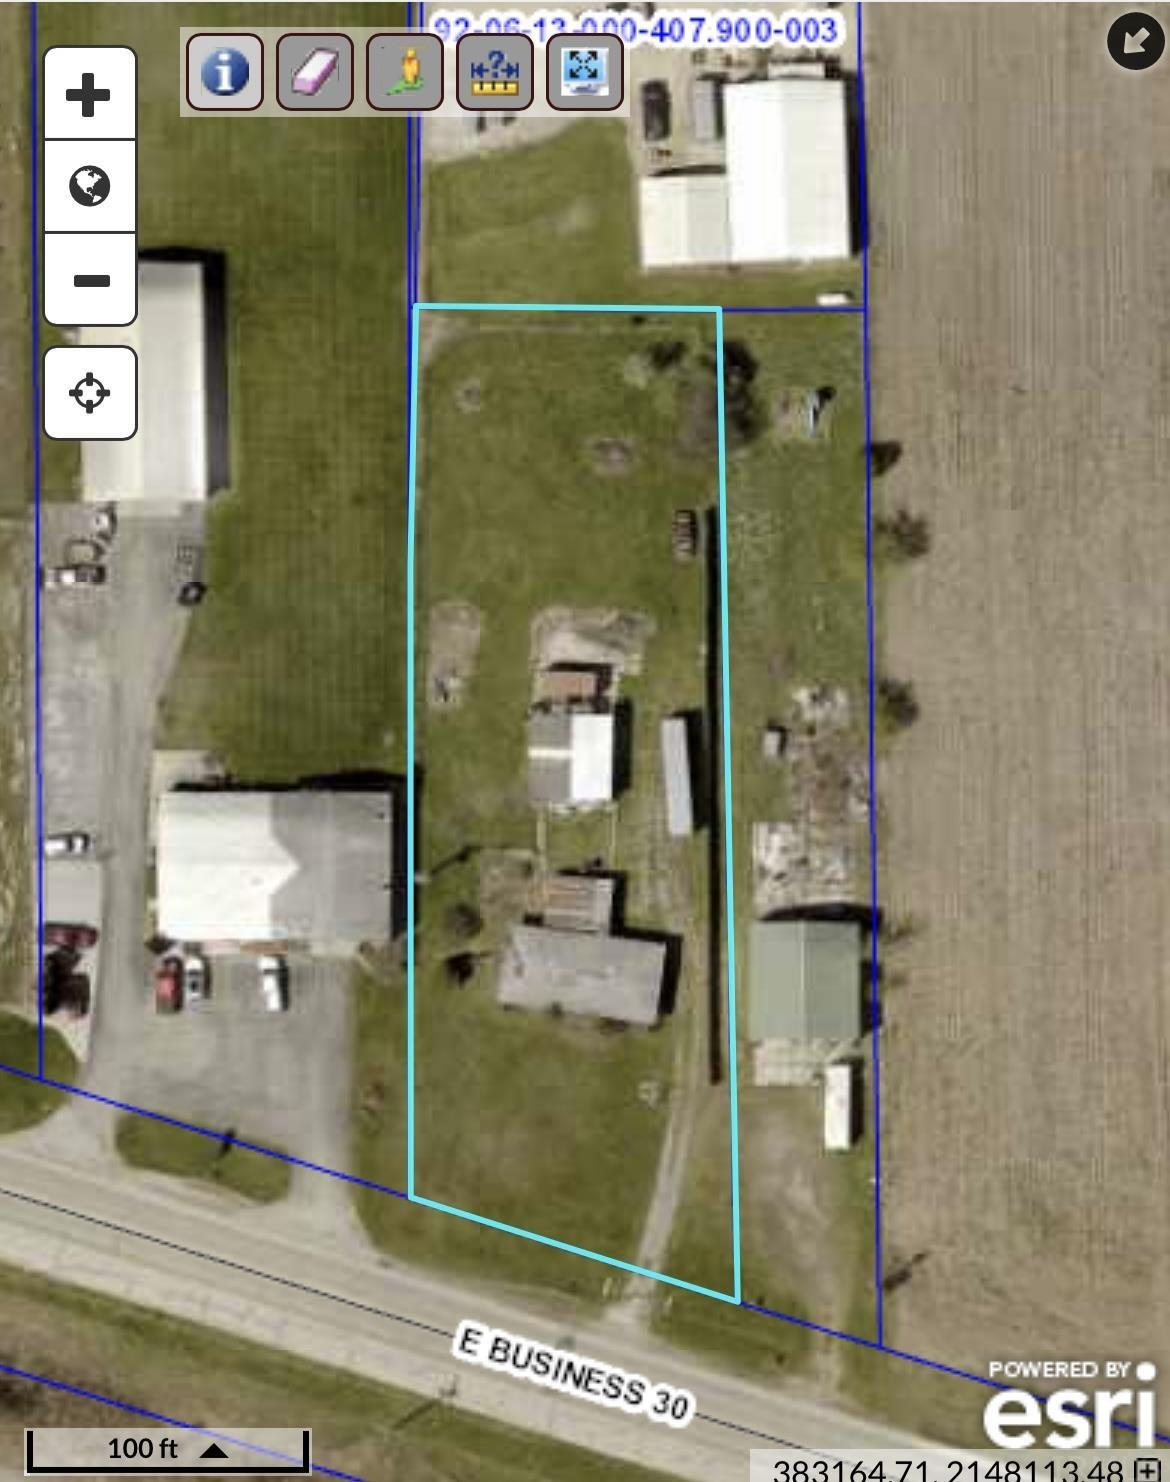 """Are you looking to start a business from the ground up? This piece of property is zoned General Business and has the opportunity to be about anything you desire! For a business, this lot is located near the new high school and is close to Highway 30 with a lot of in an out traffic daily. The lot is located just south of a growing addition and is central to several other businesses. The property got a new 6"""" well installed in 2013! Not looking for a lot for business? Because this property is zoned General Business, it has many other potential uses including residential. Do not miss out on your chance to explore the possibilities of this lot!"""